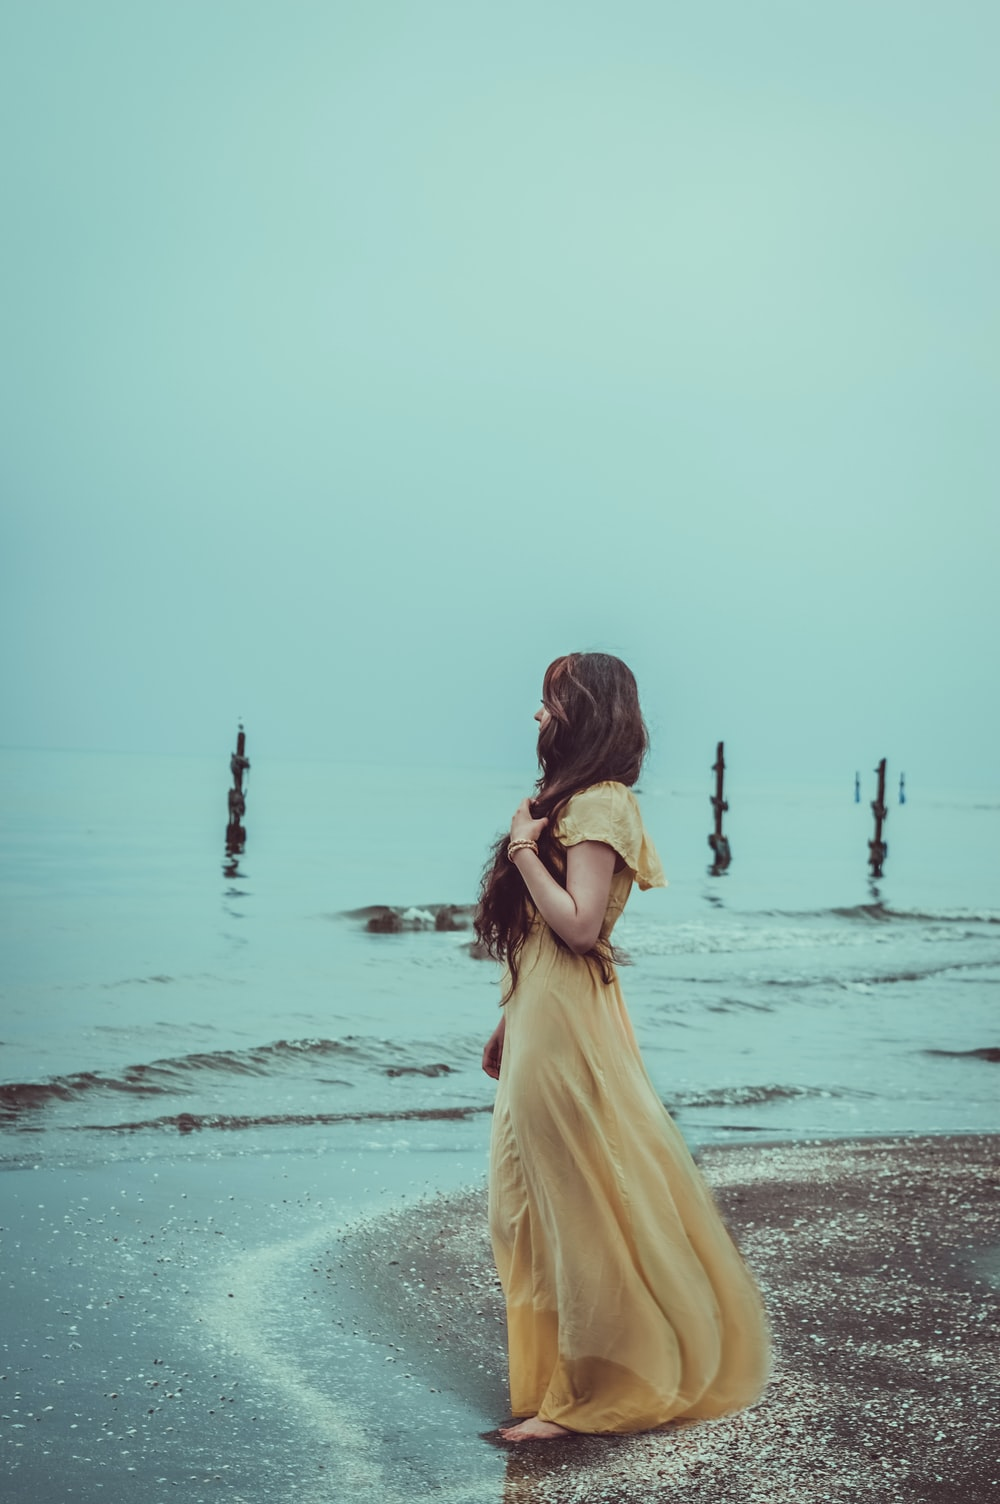 woman standing on shore